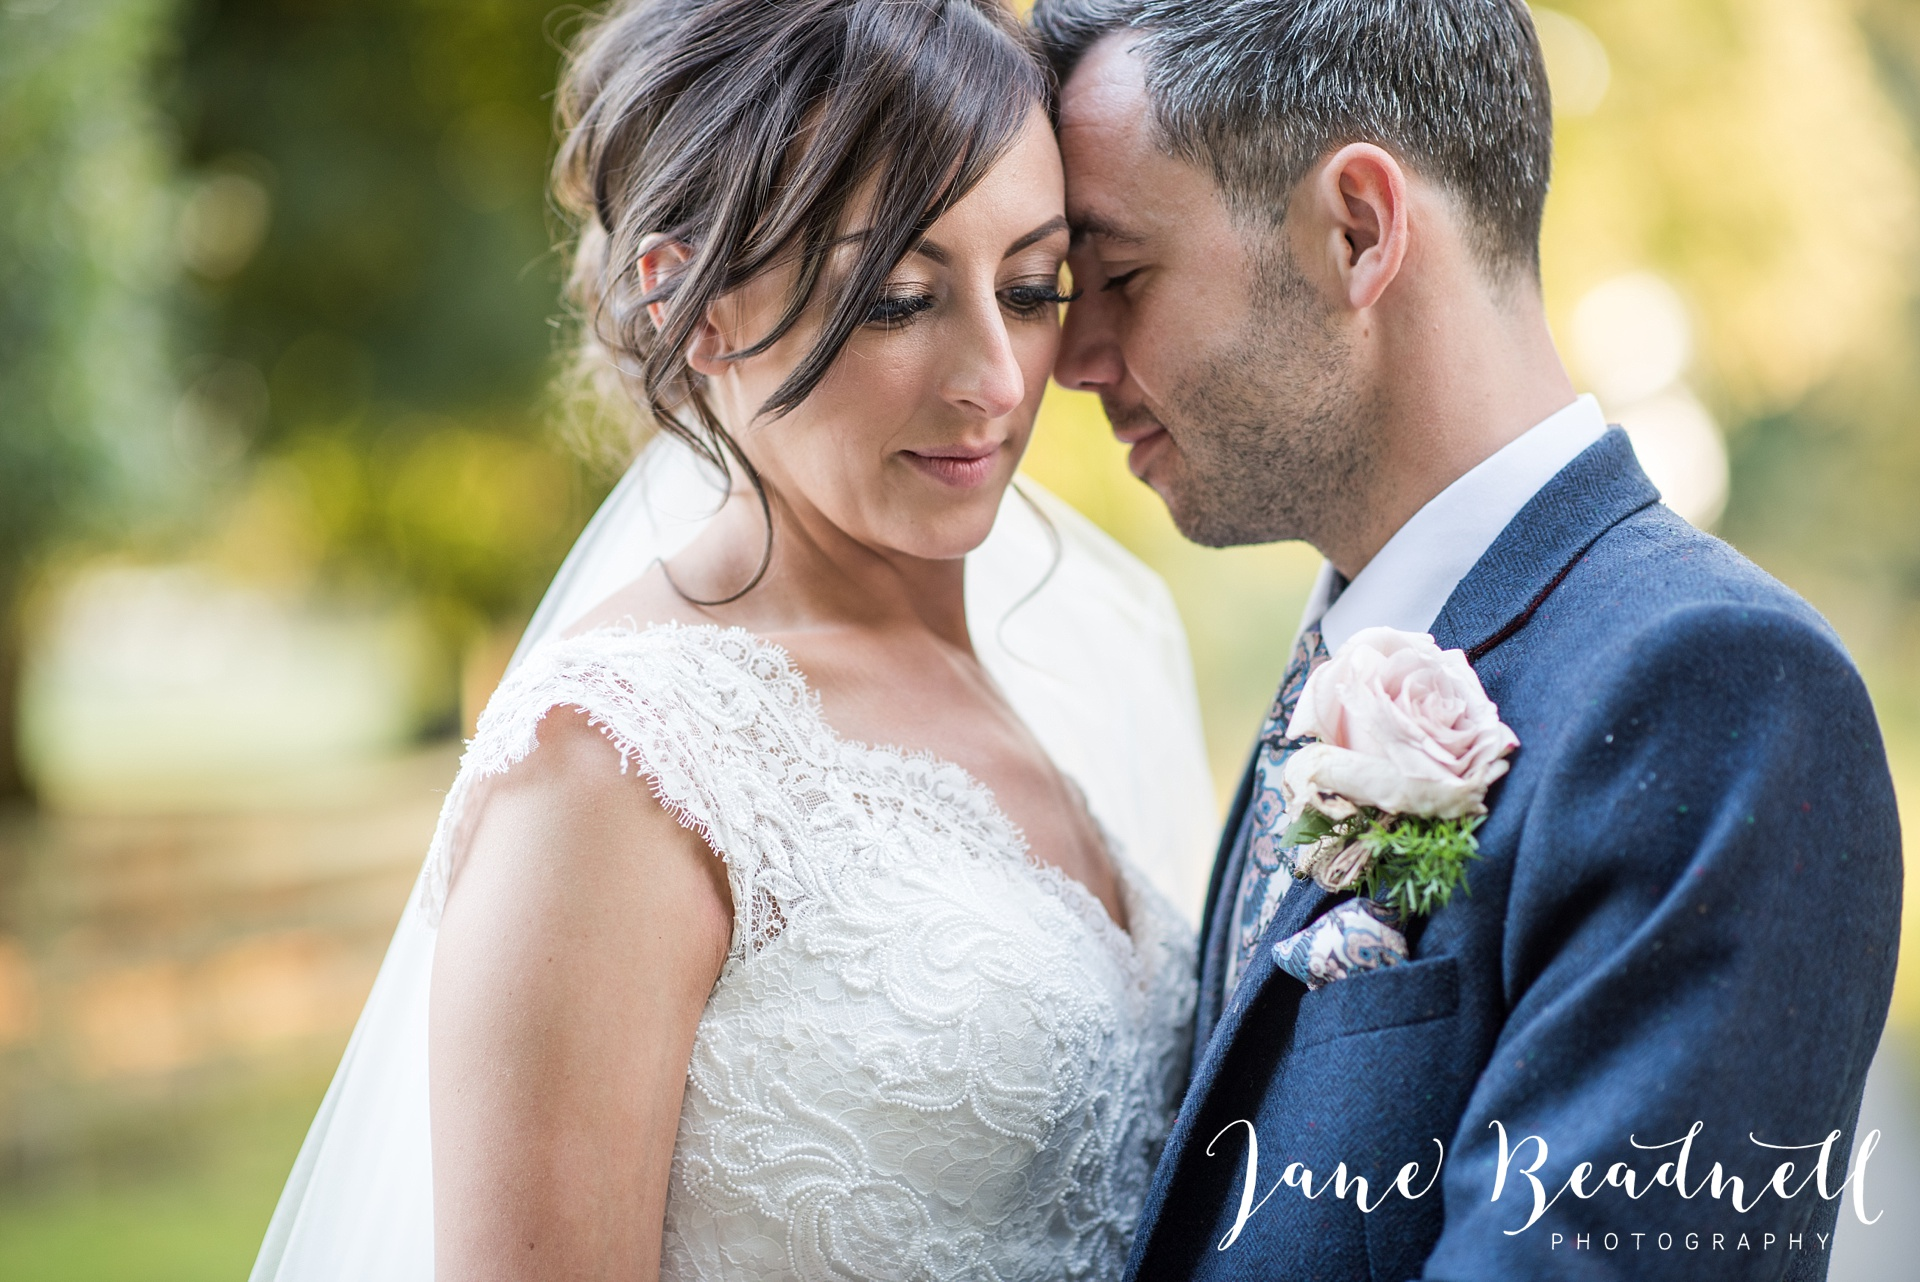 Middleton Lodge Wedding Photography by Yorkshire wedding photographer Jane Beadnell Photography. Wedding ideas and wedding inspiration for Yorkshire weddings. At Middleton Lodge.